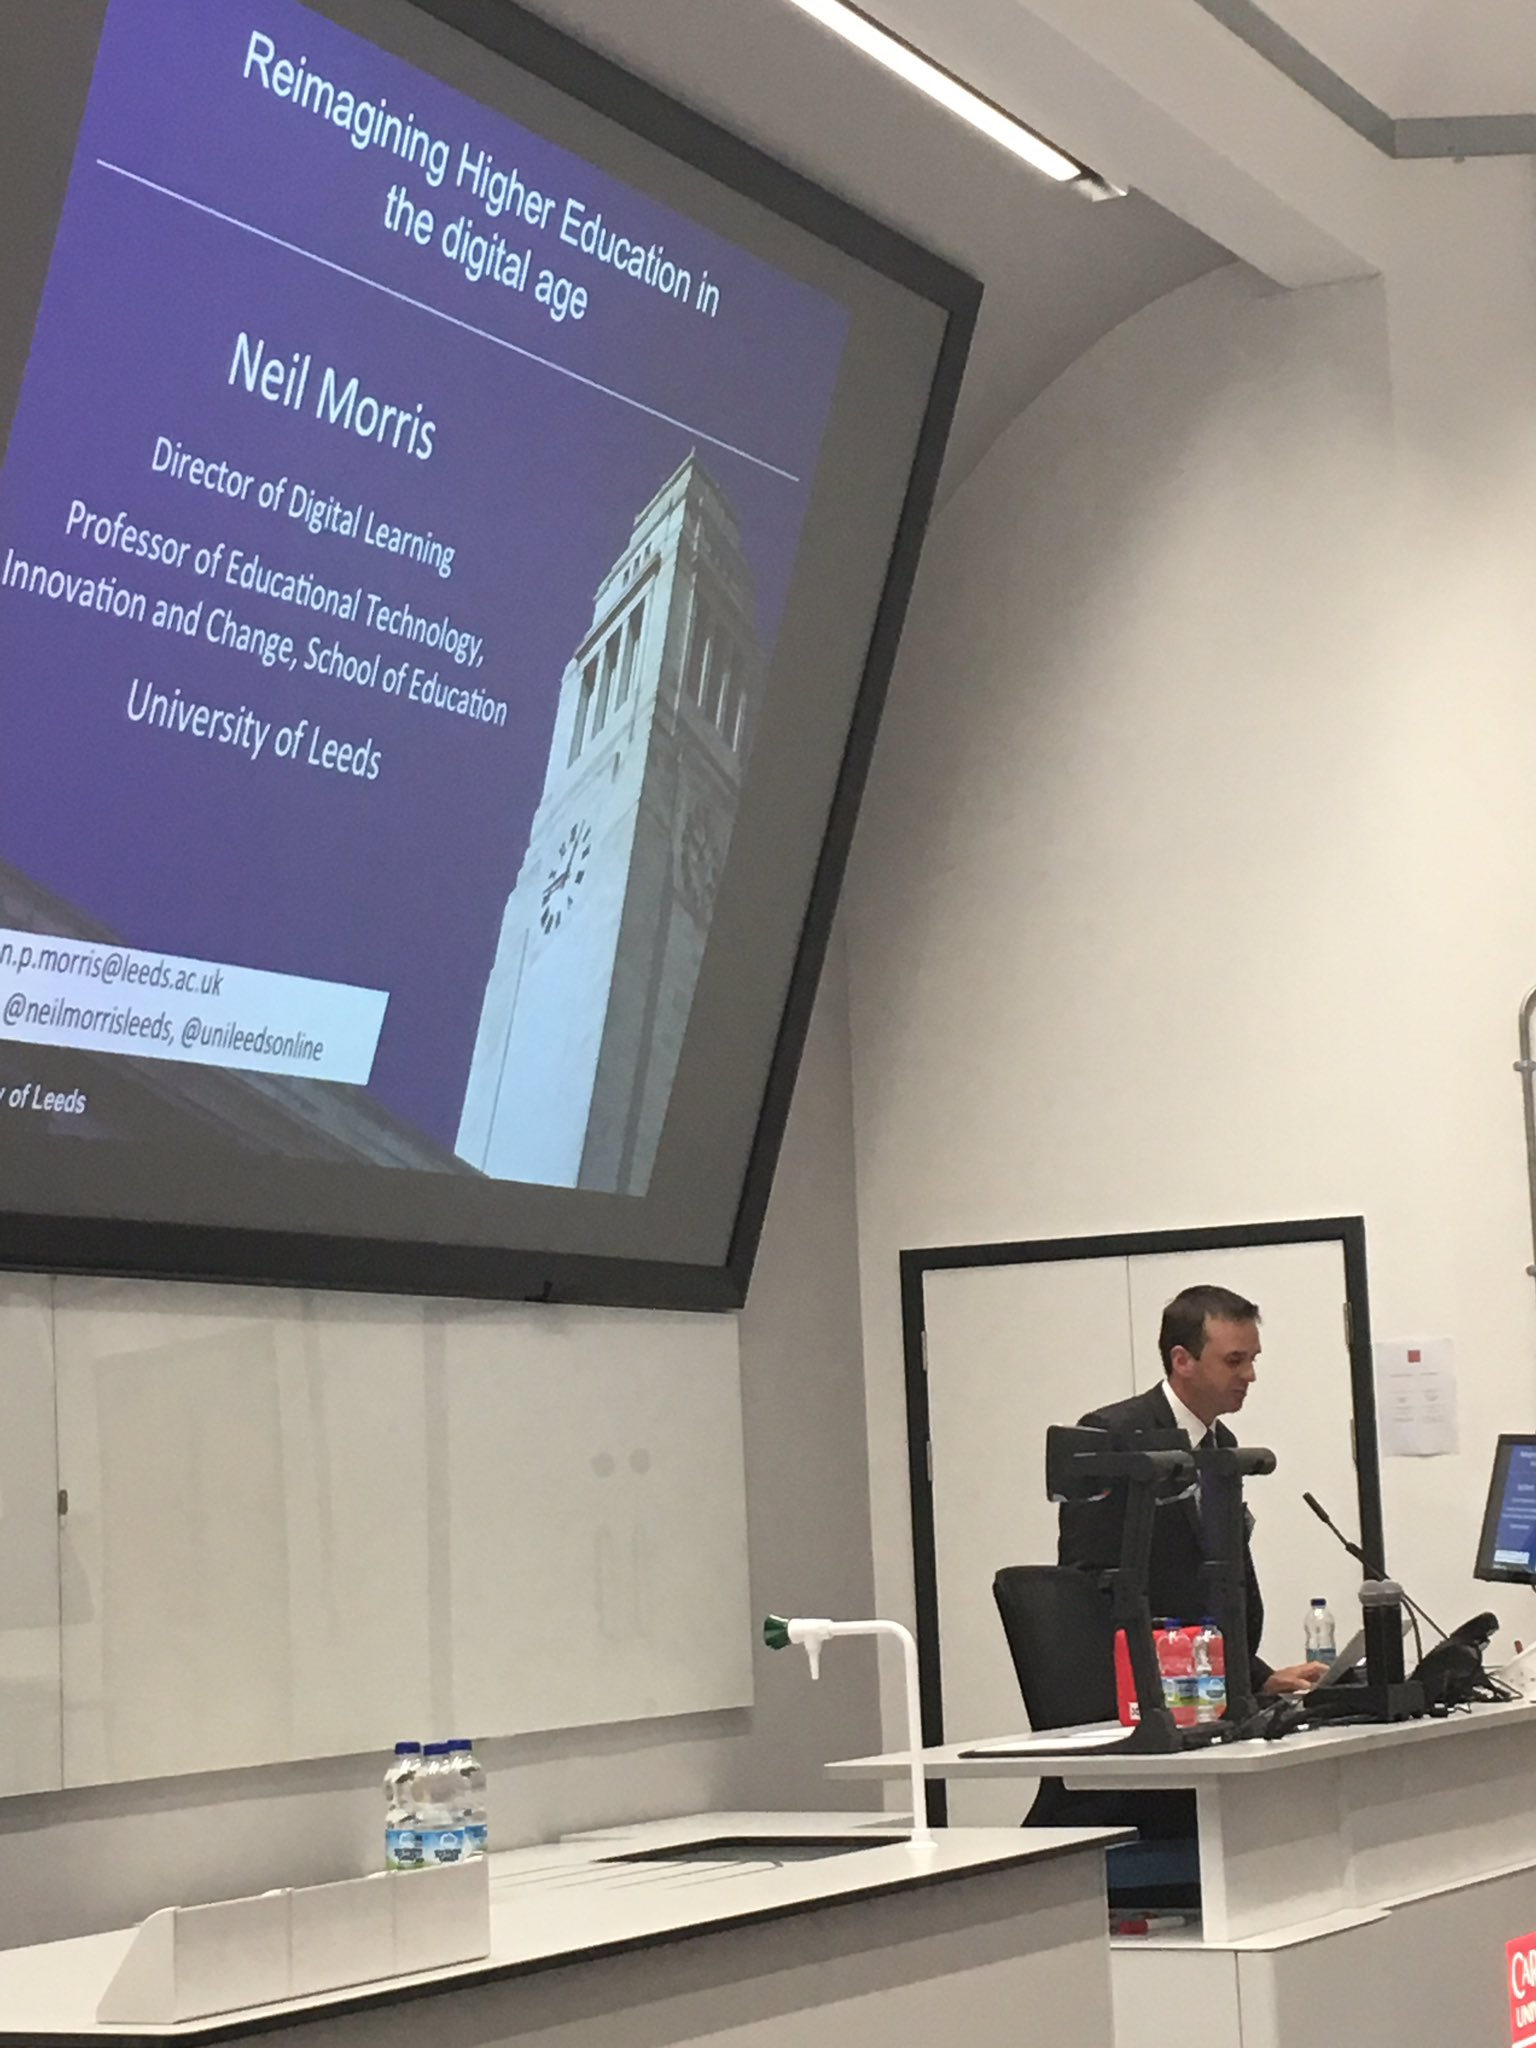 Stimulating, inspiring and challenging how digital is being embedded into HE @NeilMorrisLeeds #CUCEI17 @cardiffuni https://t.co/aOPRnTSOy4